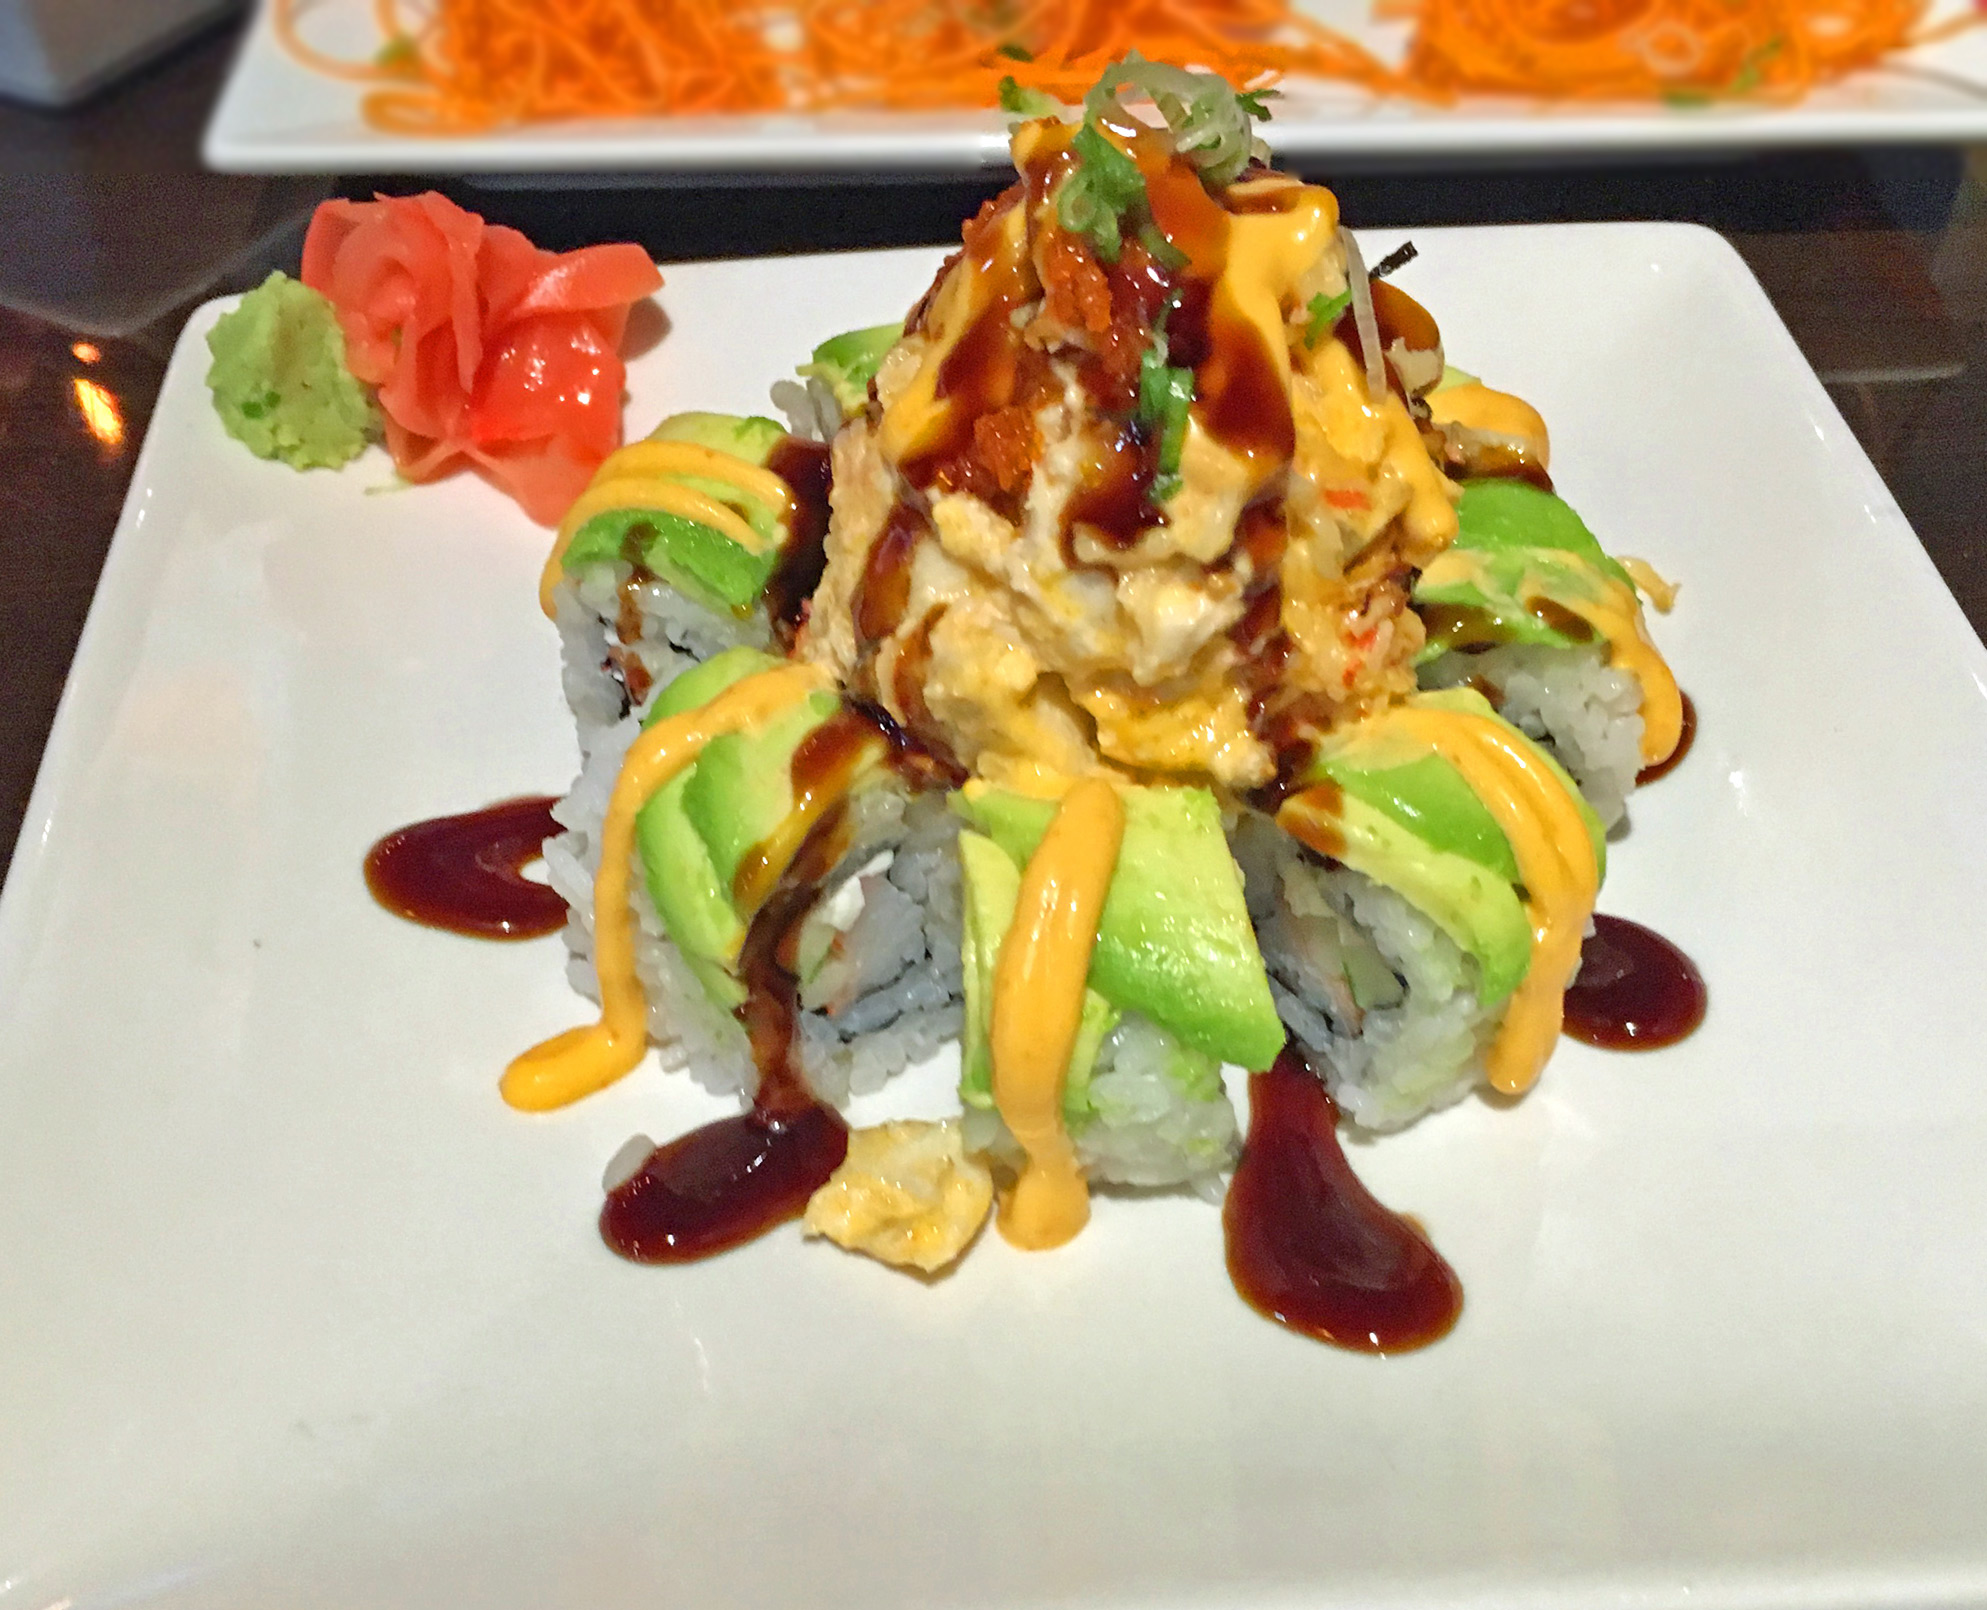 VESUVIUS AKA VOLCANO - Krab stick, cucumber and cream cheese roll topped with avocado, baked dynamite, eel sauce and spicy mayo